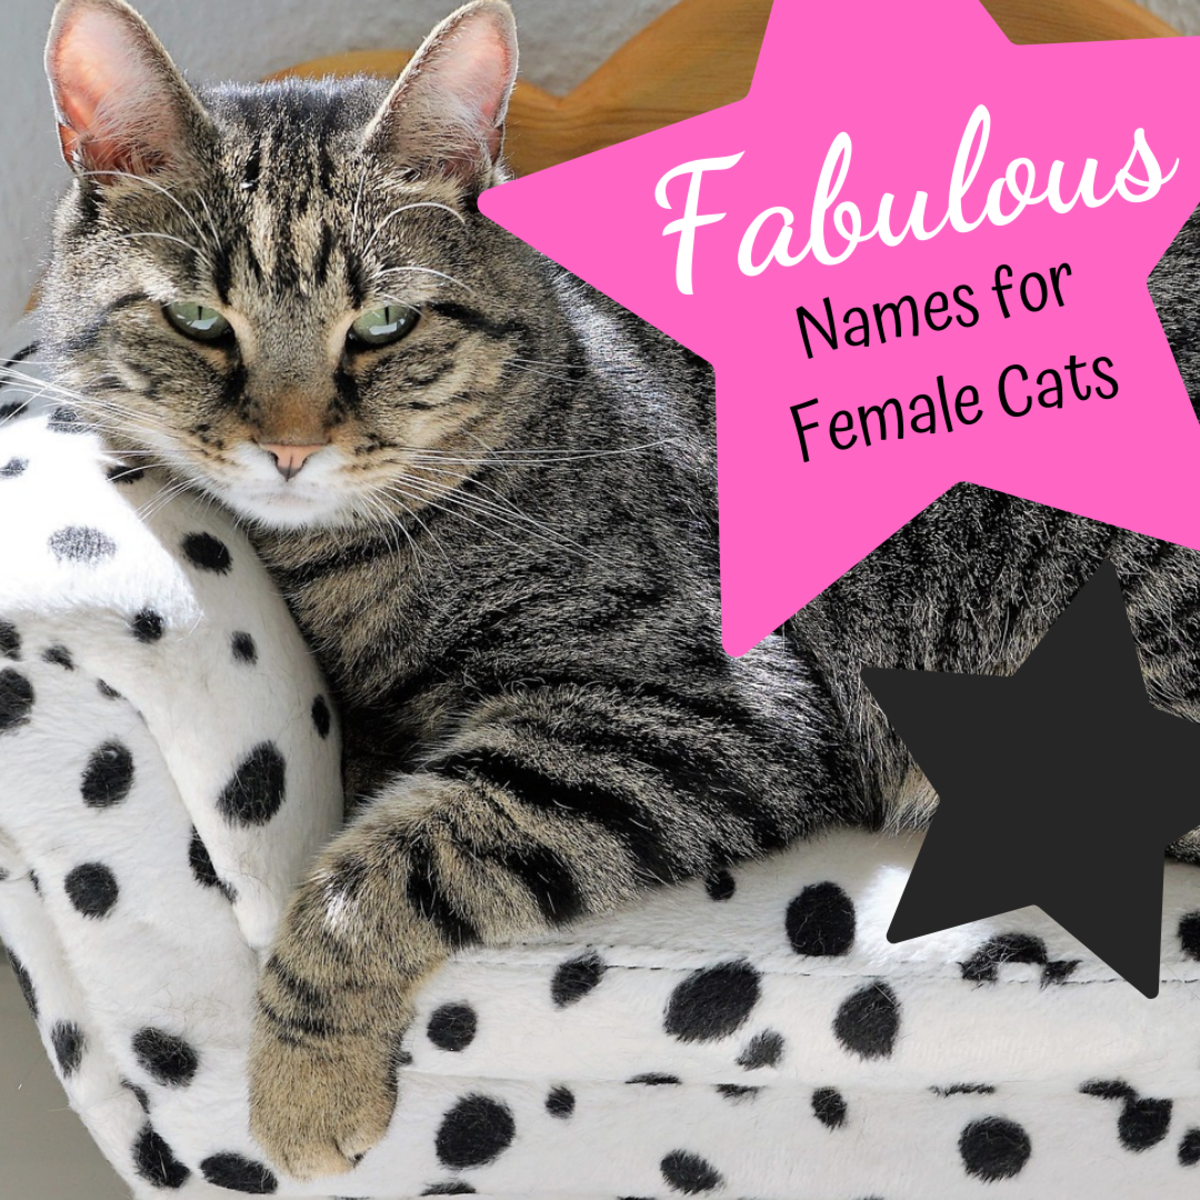 Majestic Cat Names: 88 Fabulous Names for Females